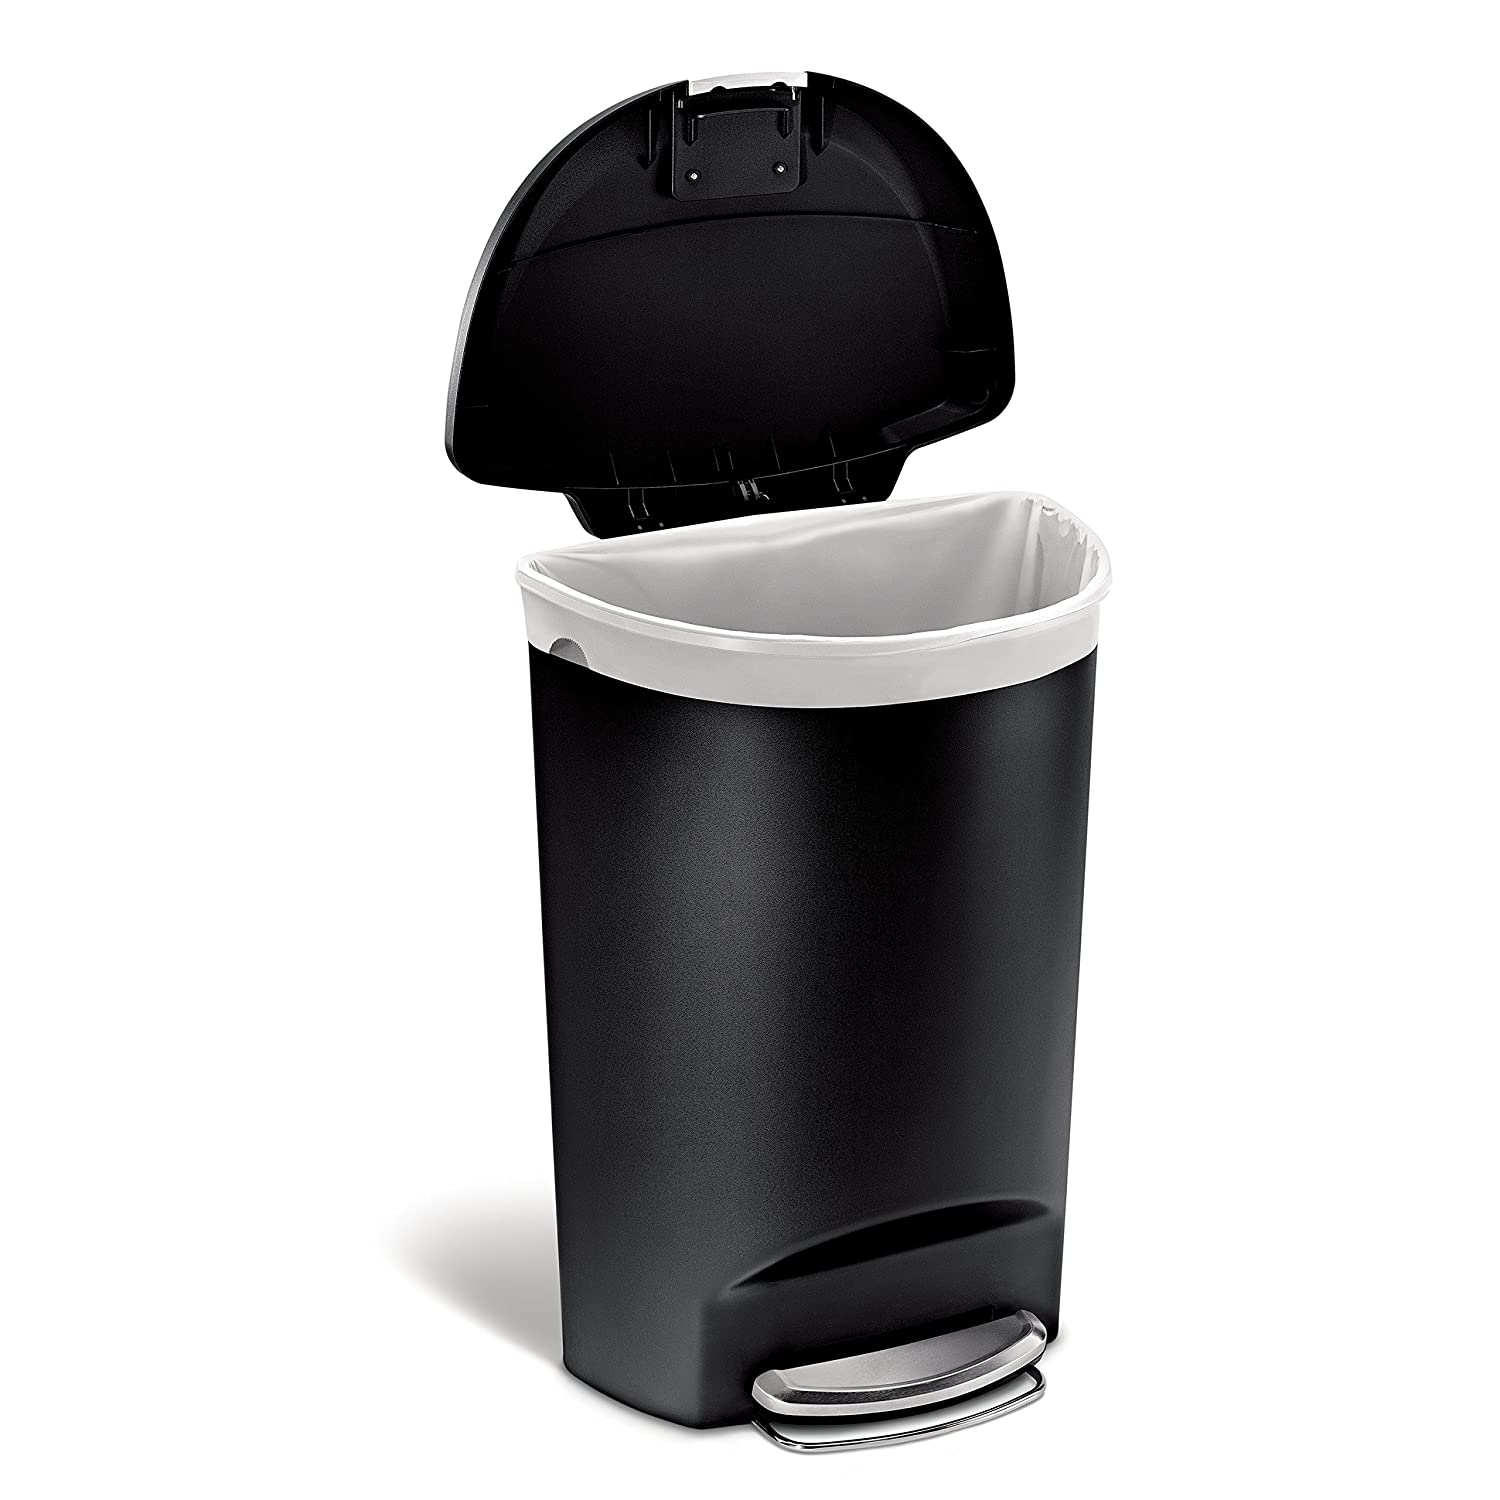 Beau Amazon.com: Simplehuman 50 Liter / 13 Gallon Semi Round Kitchen Step Trash  Can, Black Plastic With Secure Slide Lock: Home U0026 Kitchen